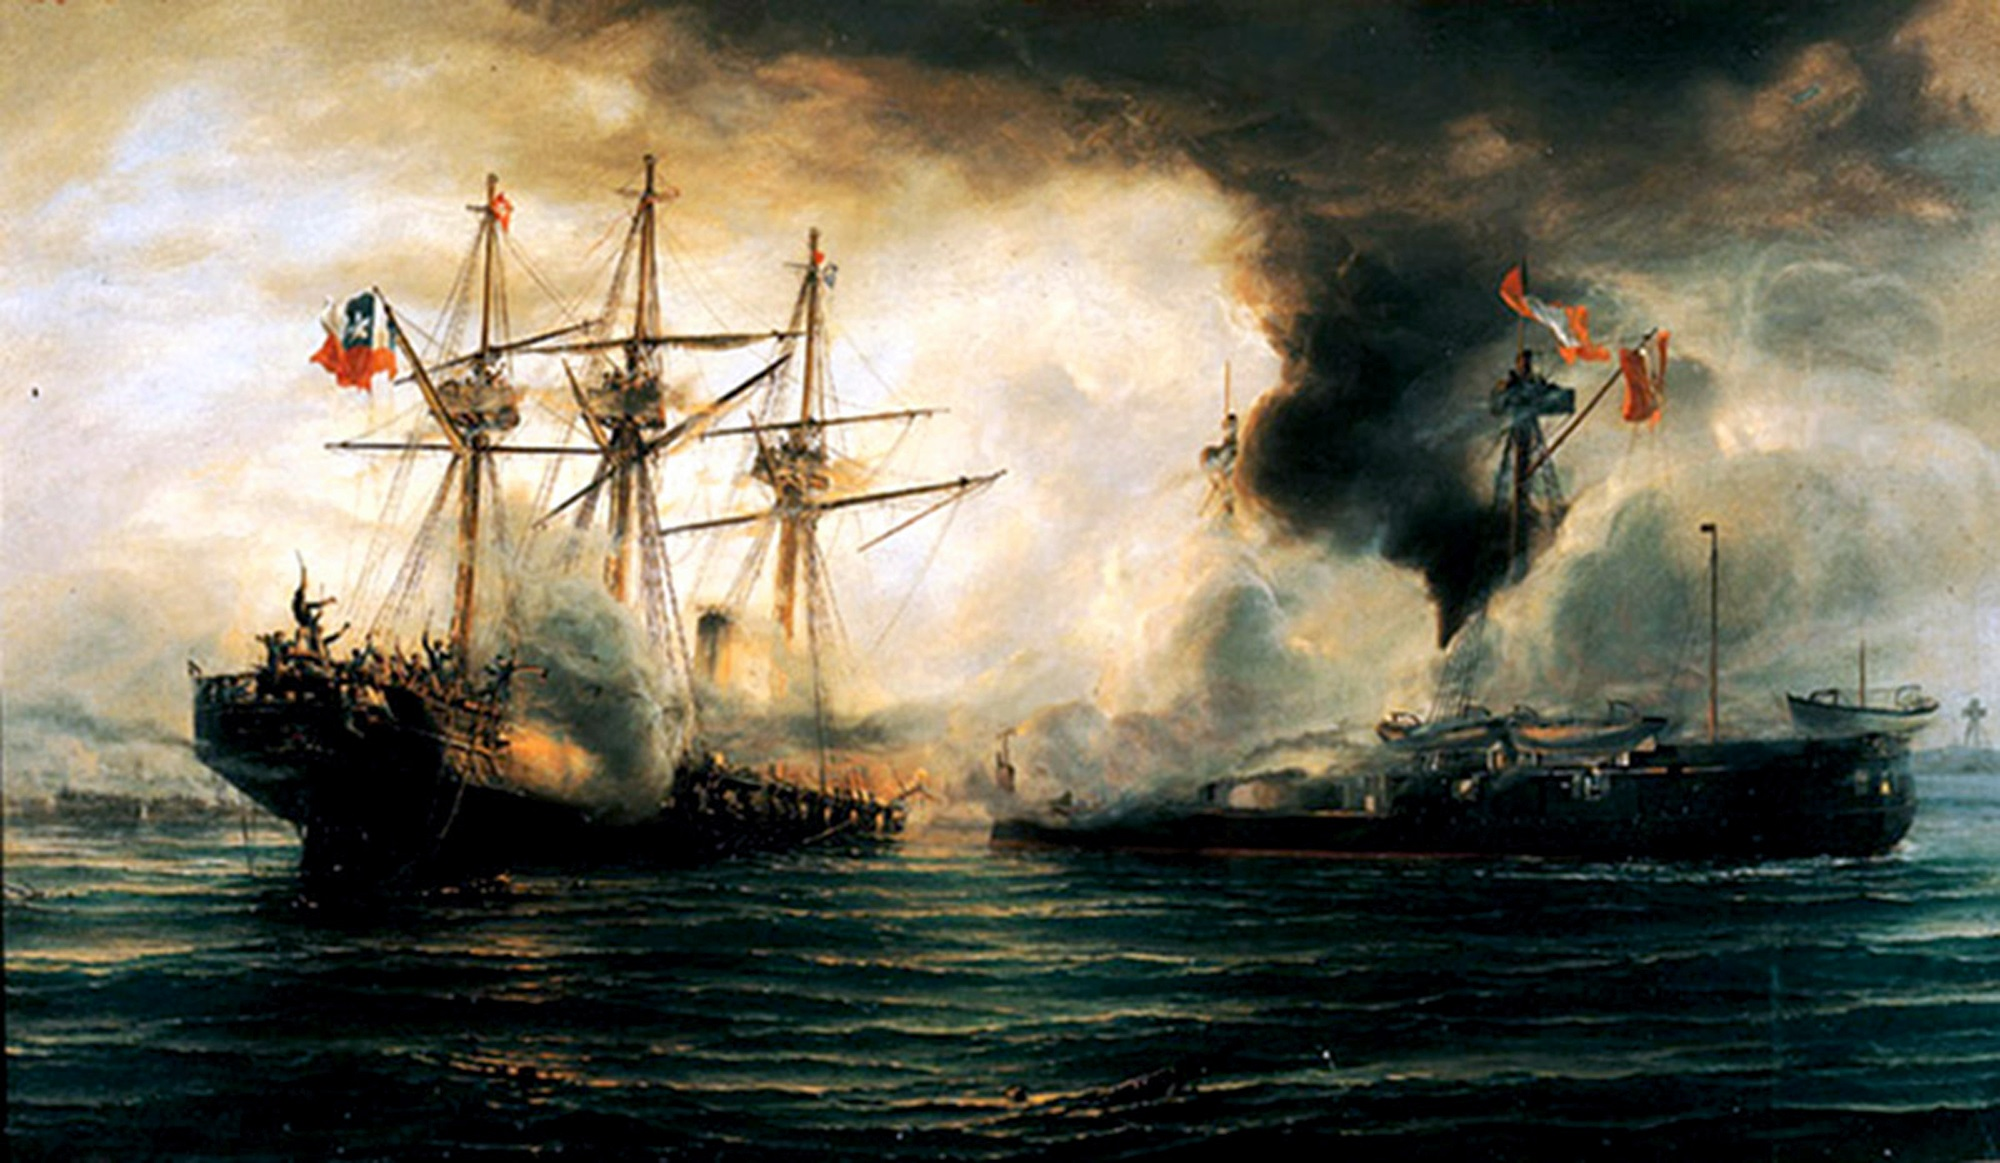 Sinking_of_the_Esmeralda_during_the_battle_of_Iquique (2000 x 1163)